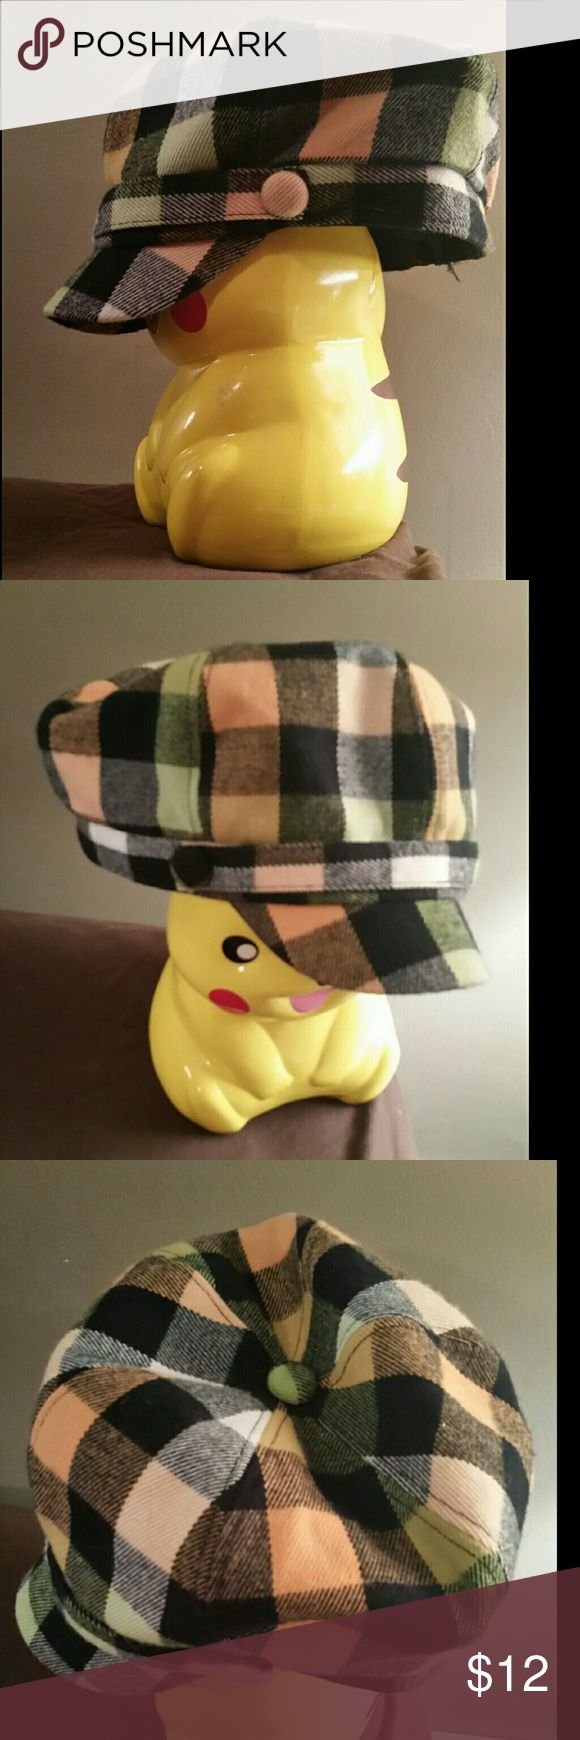 Plaid Hat Women's Cab Style Hat Black white peach and green colored There's elastic around the inside of the hat for a comfortable fit :) Looks new, no signs of wear or stains d&y Accessories Hats